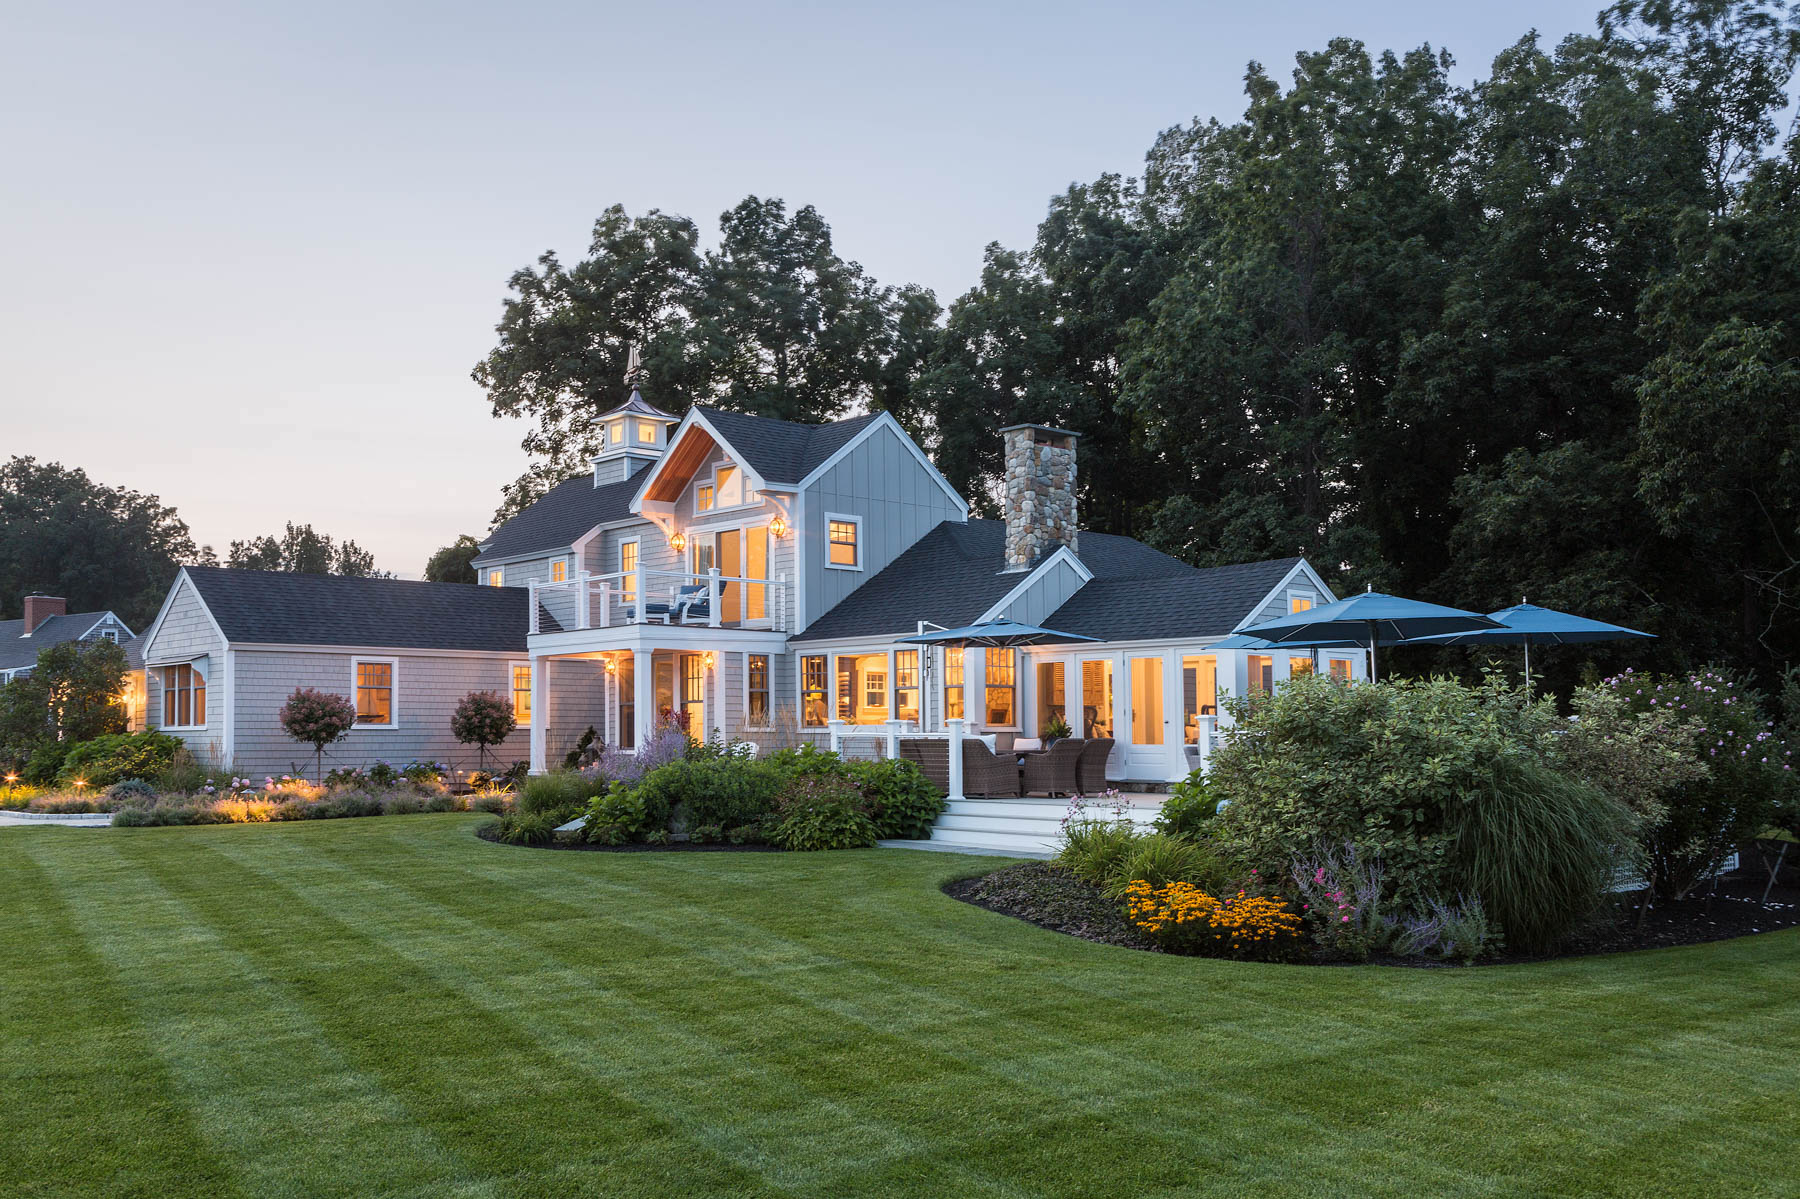 Amy Dutton Home Exterior Kittery Maine